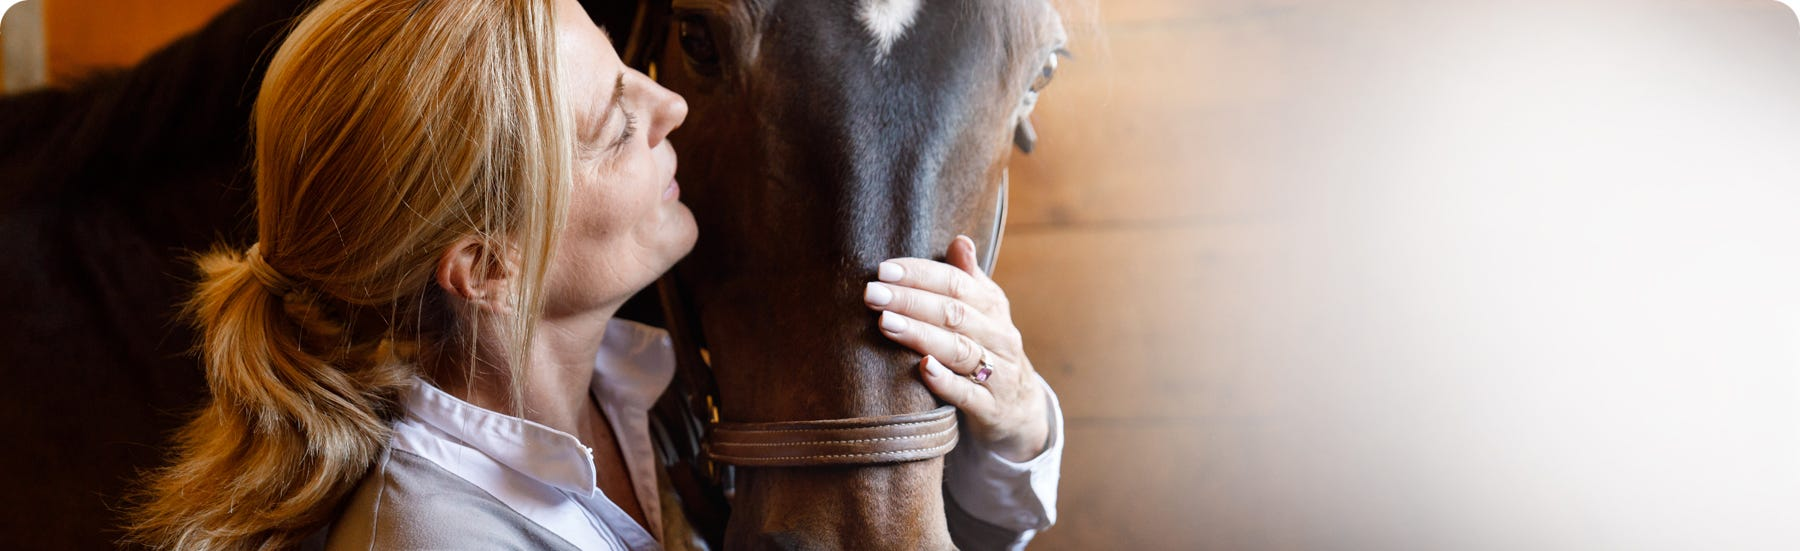 Wormers for horses